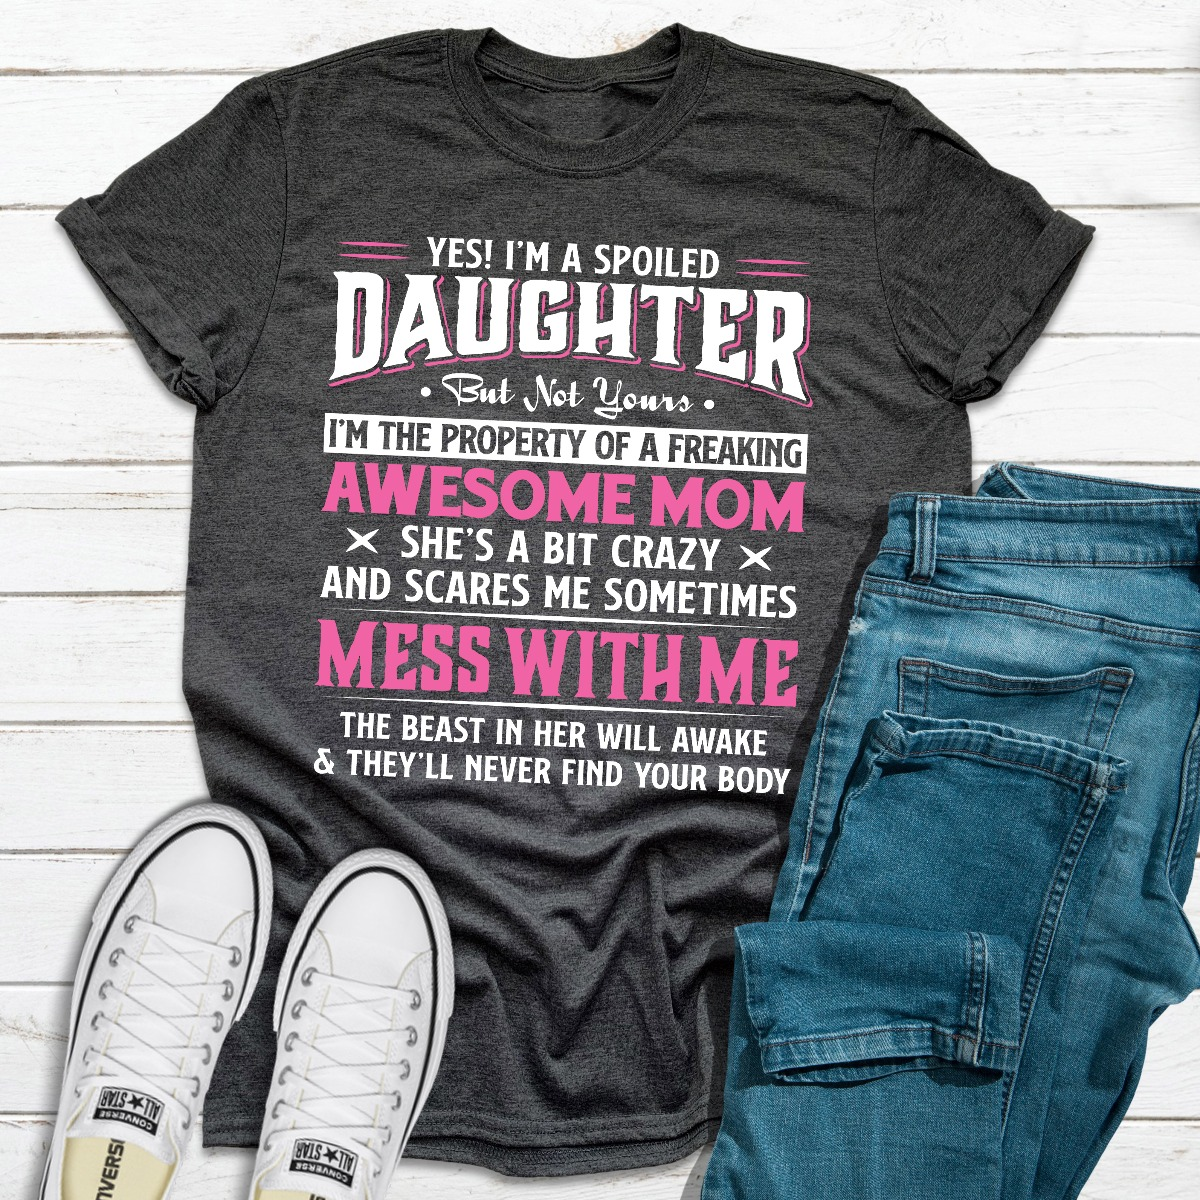 Yes I'm A Spoiled Daughter (Dark Heather / 3Xl)